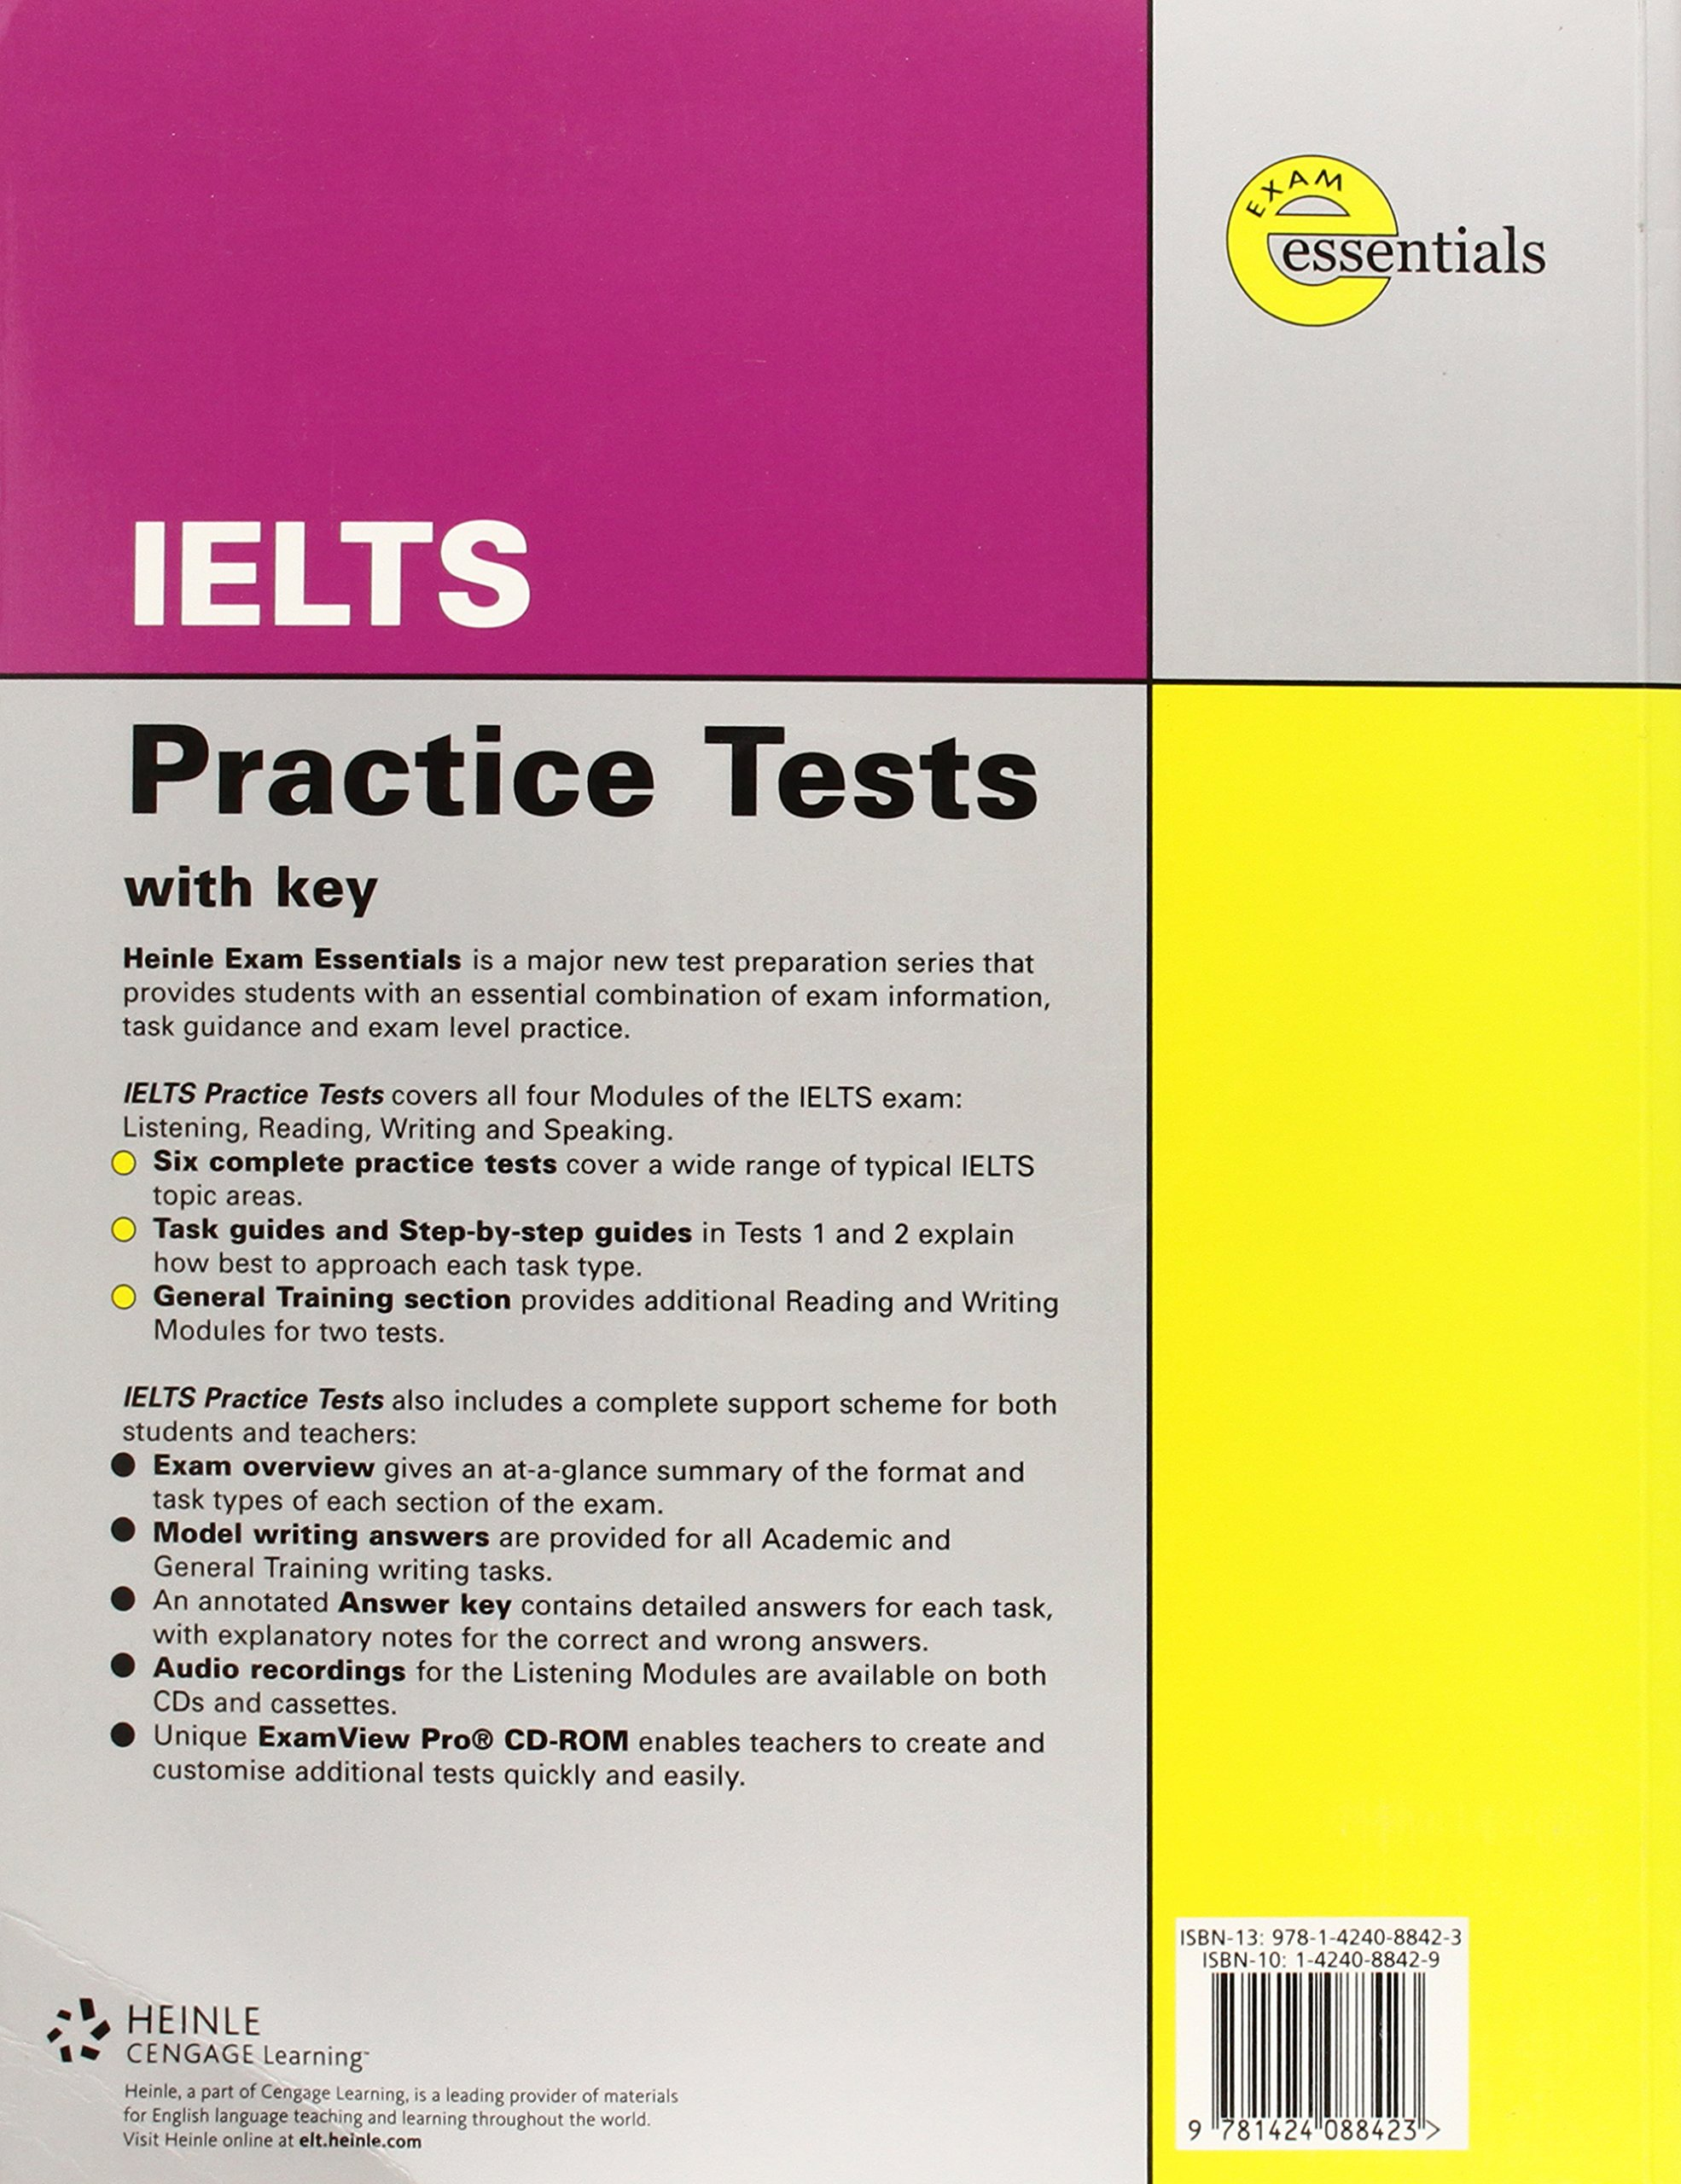 Buy Exam Essentials - IELTS Practice Tests with key